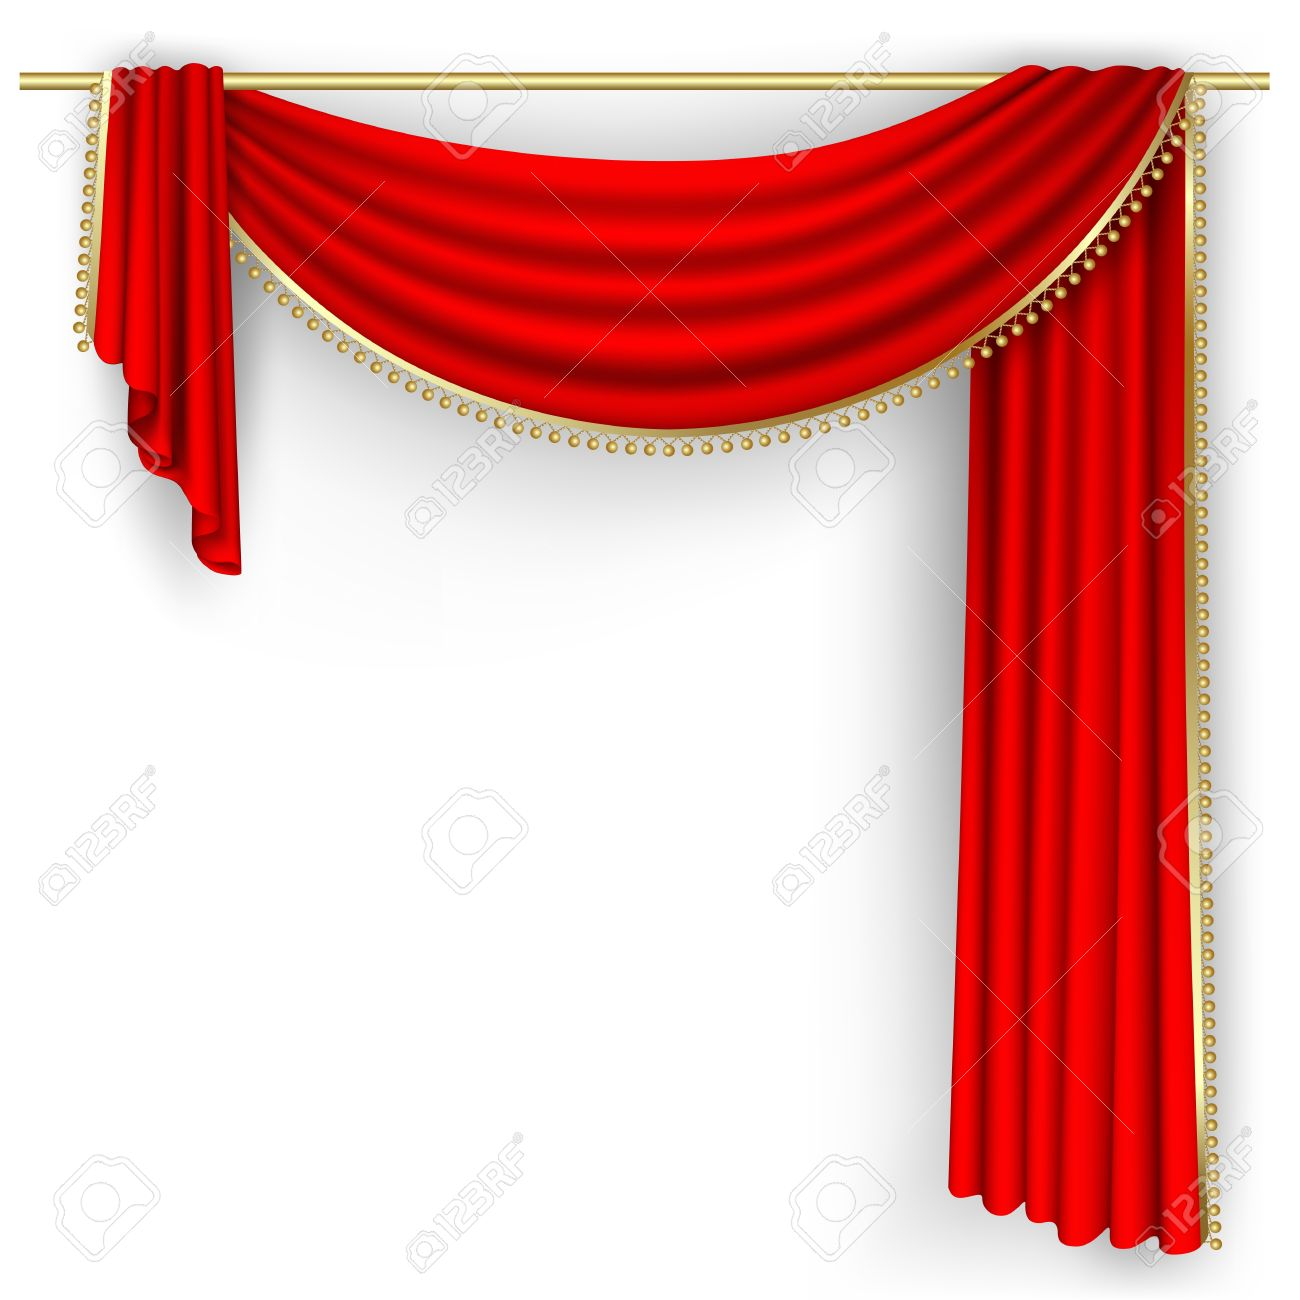 Stage curtain theater stage with red curtain illustration